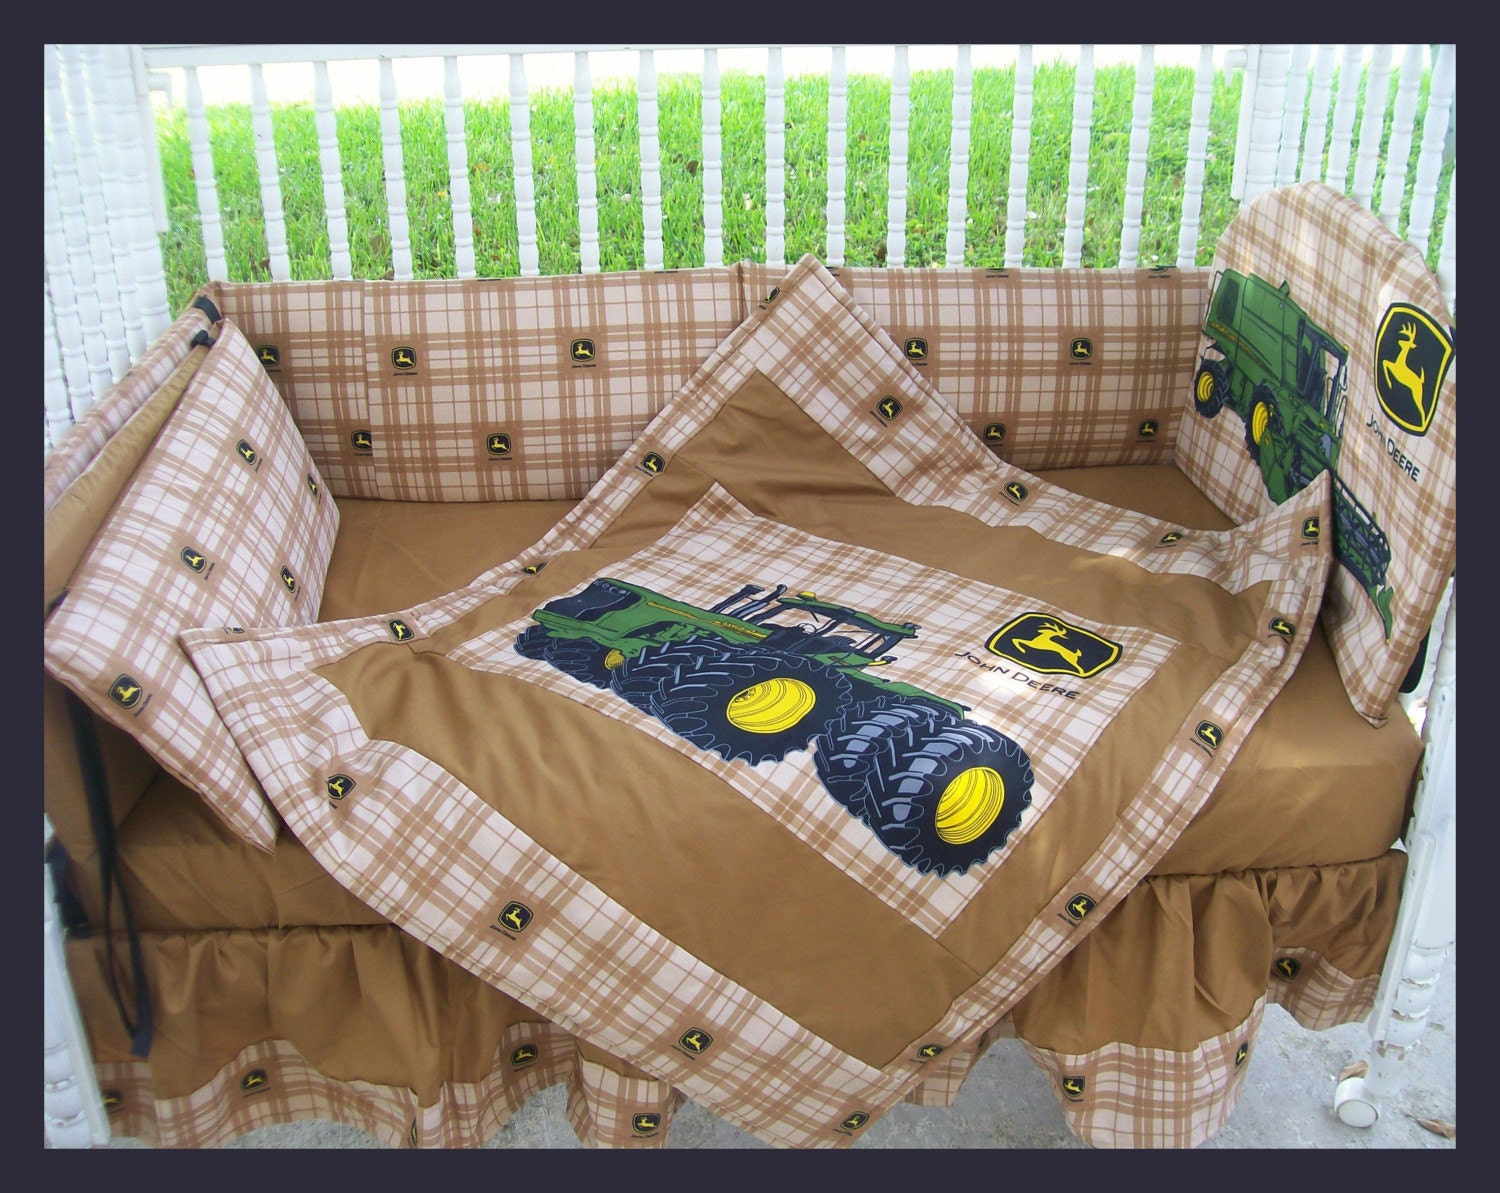 New JOHN DEERE baby crib bedding set made w/ new brown plaid